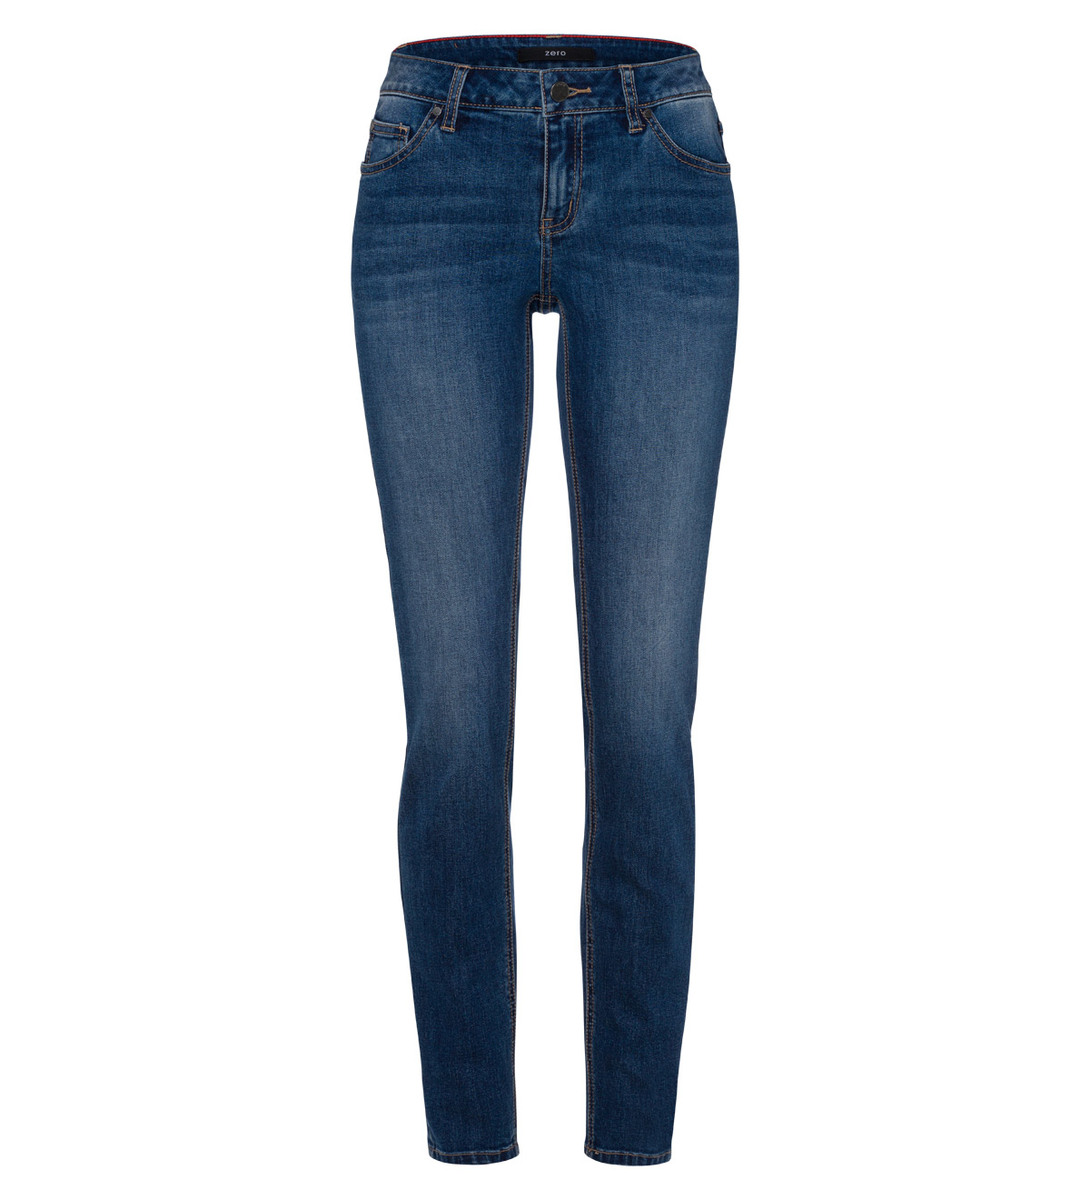 Jeans im Five-Pocket-Design 32 Inch in mid blue authentic wash out